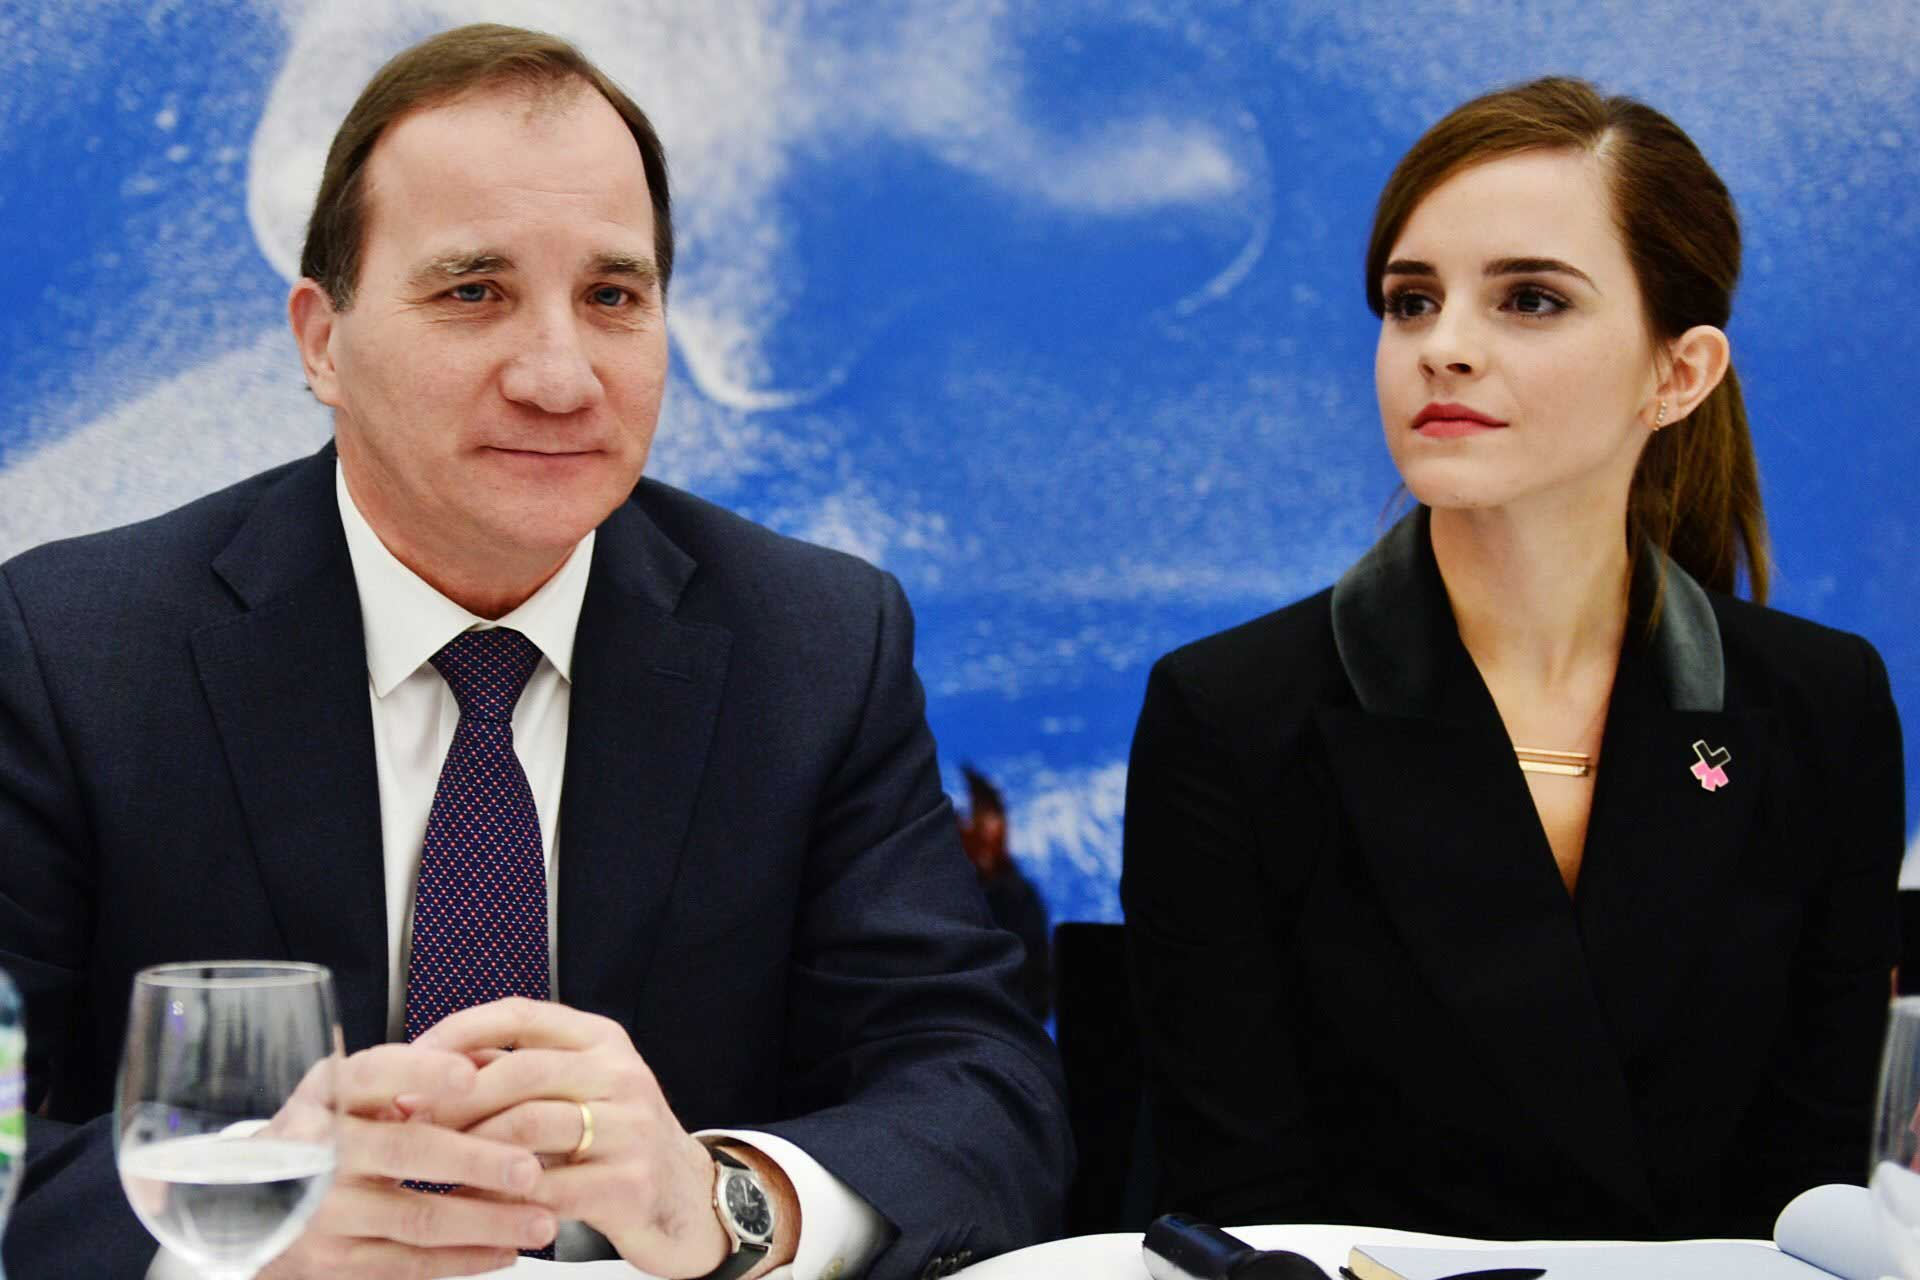 Swedish prime minister Stefan Löfven and actress Emma Watson attend the World Economic Forum Annual Meeting 2015 in Davos, Switzerland.